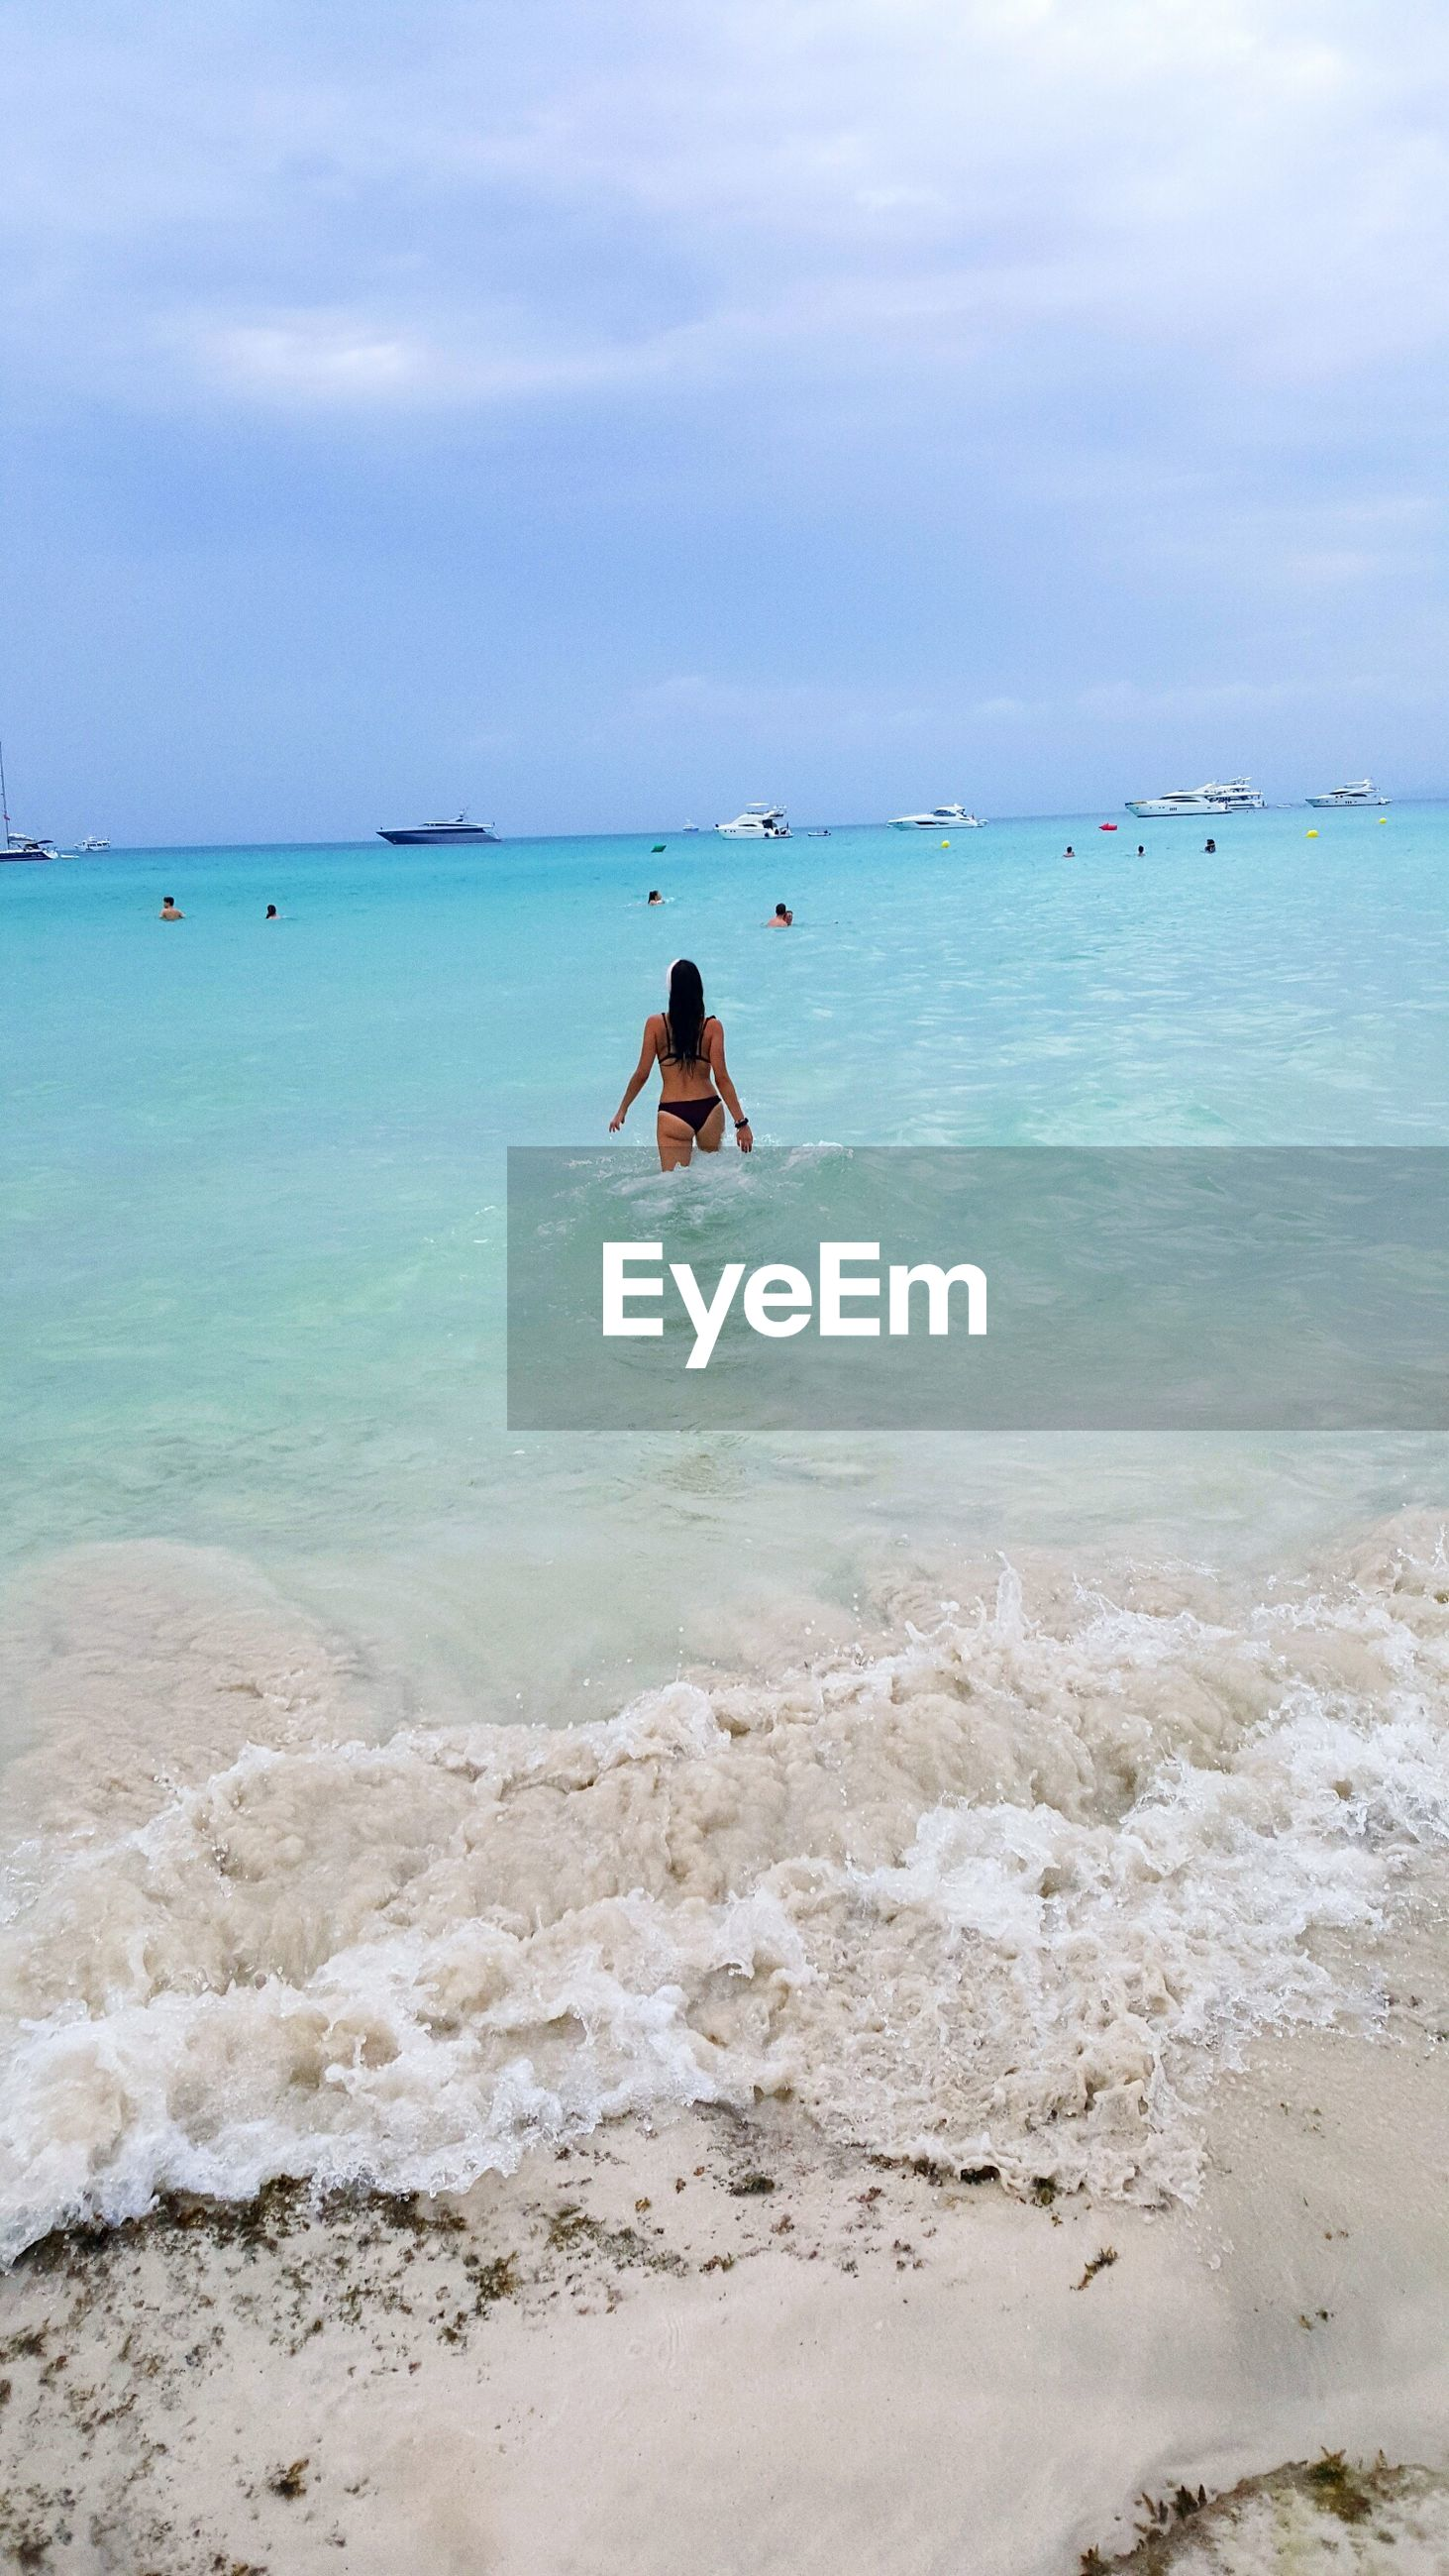 sea, horizon over water, sky, beauty in nature, water, scenics, beach, nature, cloud - sky, one person, real people, tranquility, day, leisure activity, outdoors, tranquil scene, sand, vacations, lifestyles, women, people